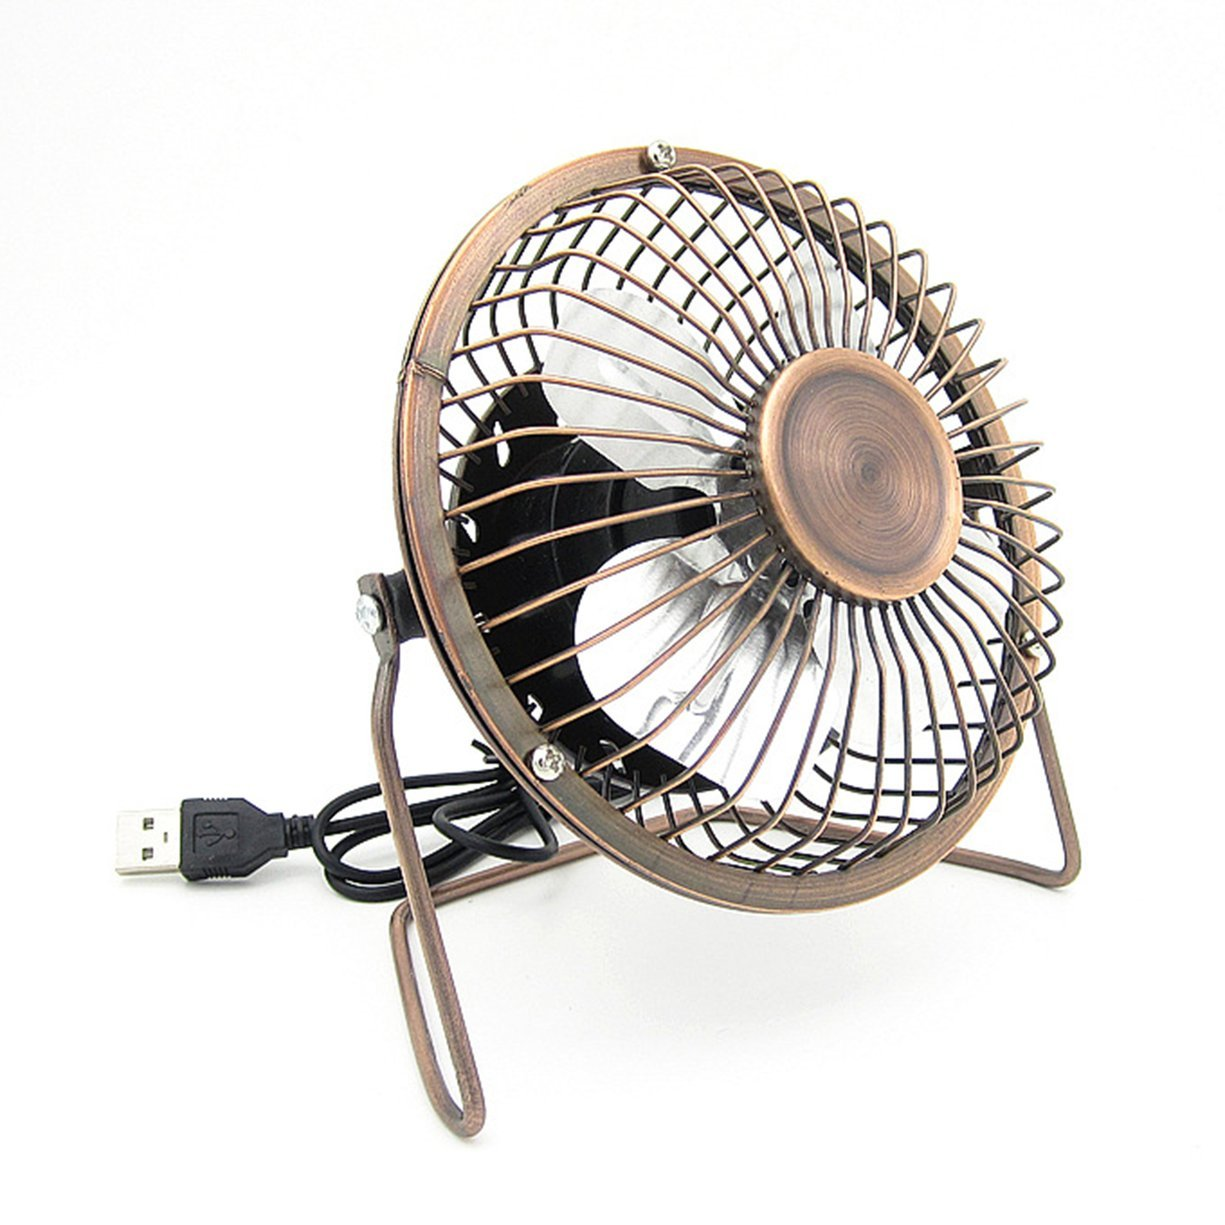 4 Inch USB Fan,Mini Desktop Fan,Silent Office USB Table Fan with 360 Degree Rotation,USB Clip and Desk Personal Fan,Metal Blades Cooling Fan with Adjustable Angle for Laptop Notebook Tablet PC